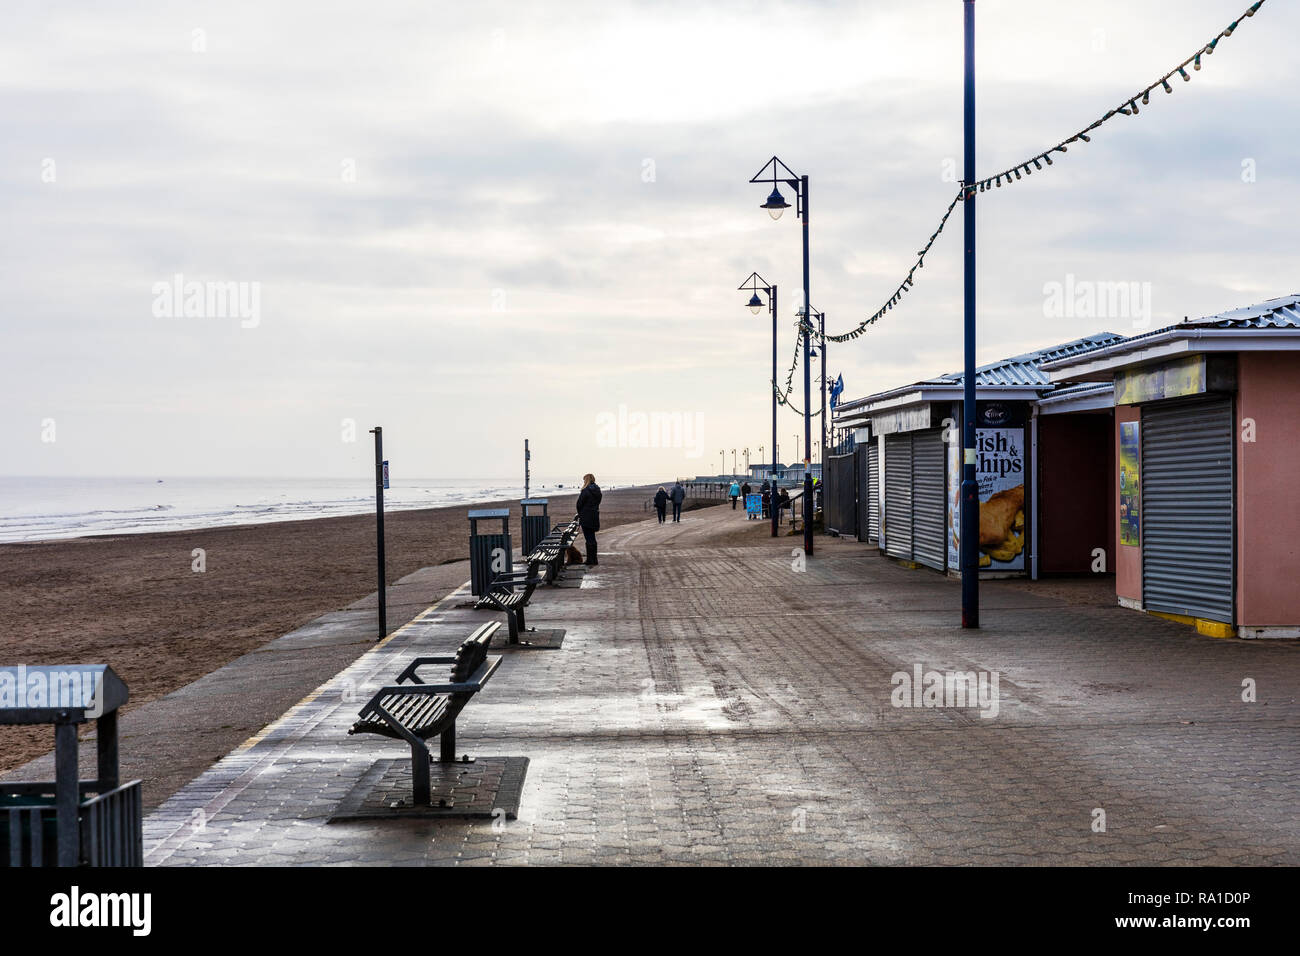 Mablethorpe, Lincolnshire, UK. 30th December 2018. Overcast skies on the East Coast of the UK at Mablethorpe beach 30/12/2018 cloudy sky with the sun trying to burn through Credit: Tommy  (Louth)/Alamy Live News Stock Photo